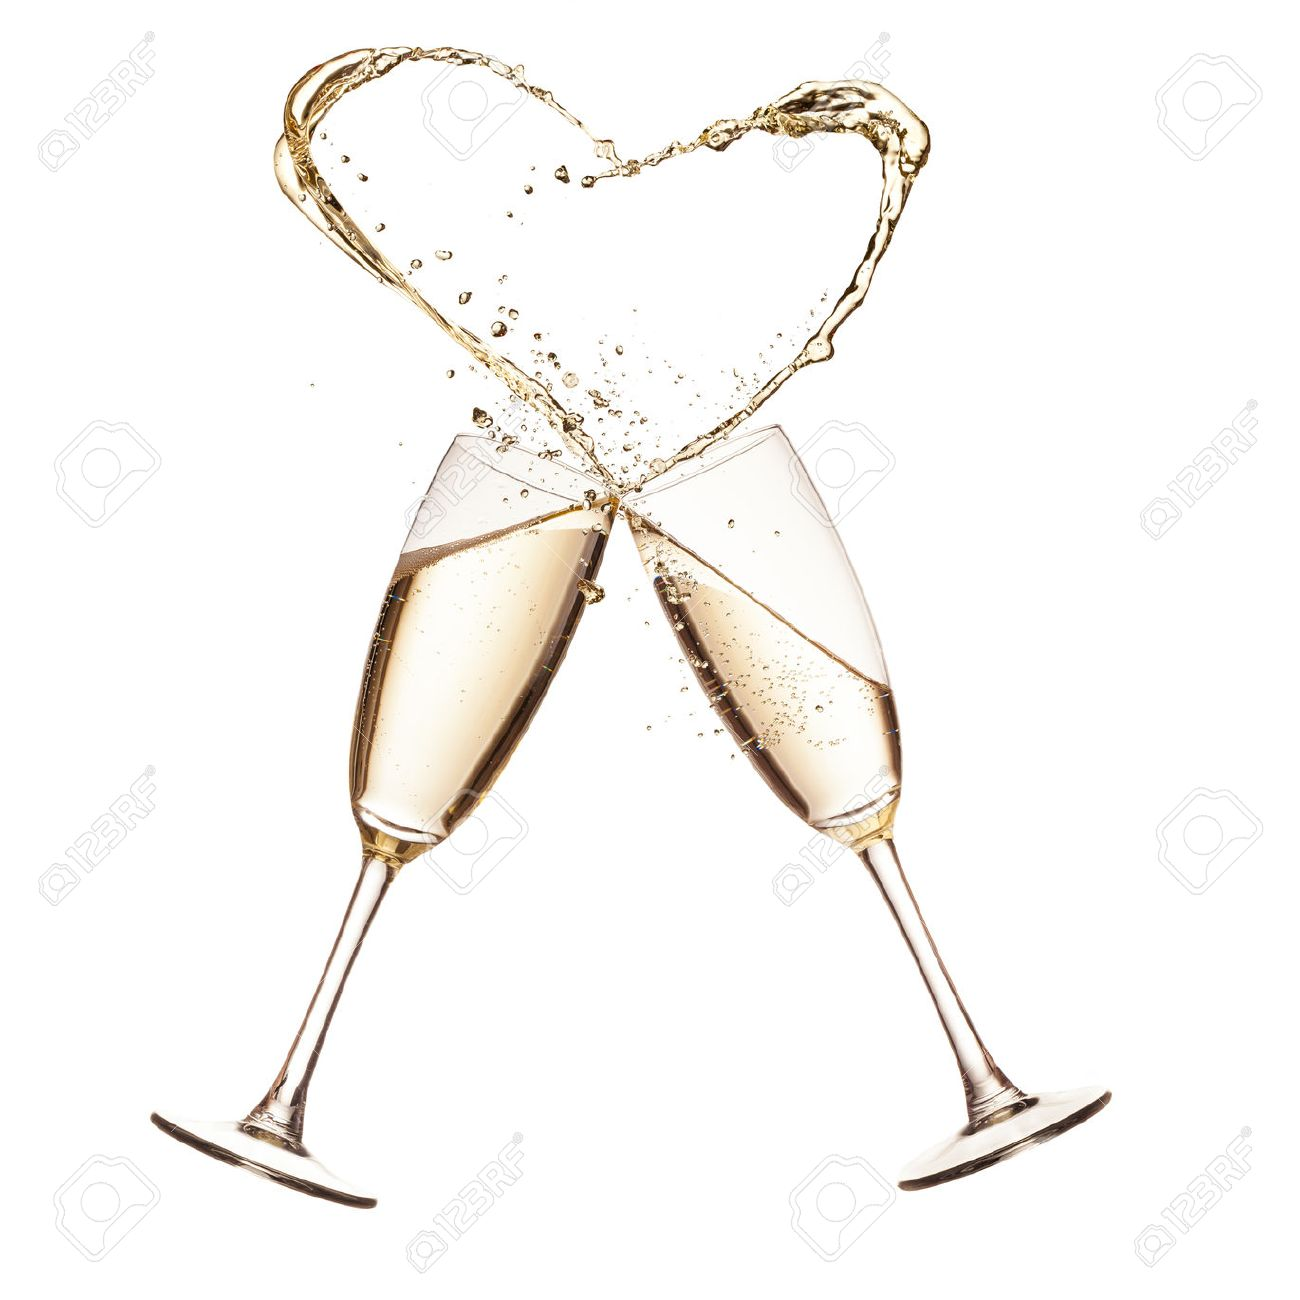 296ce4a510ba Two Glasses Of Champagne With Heart Shape Splash